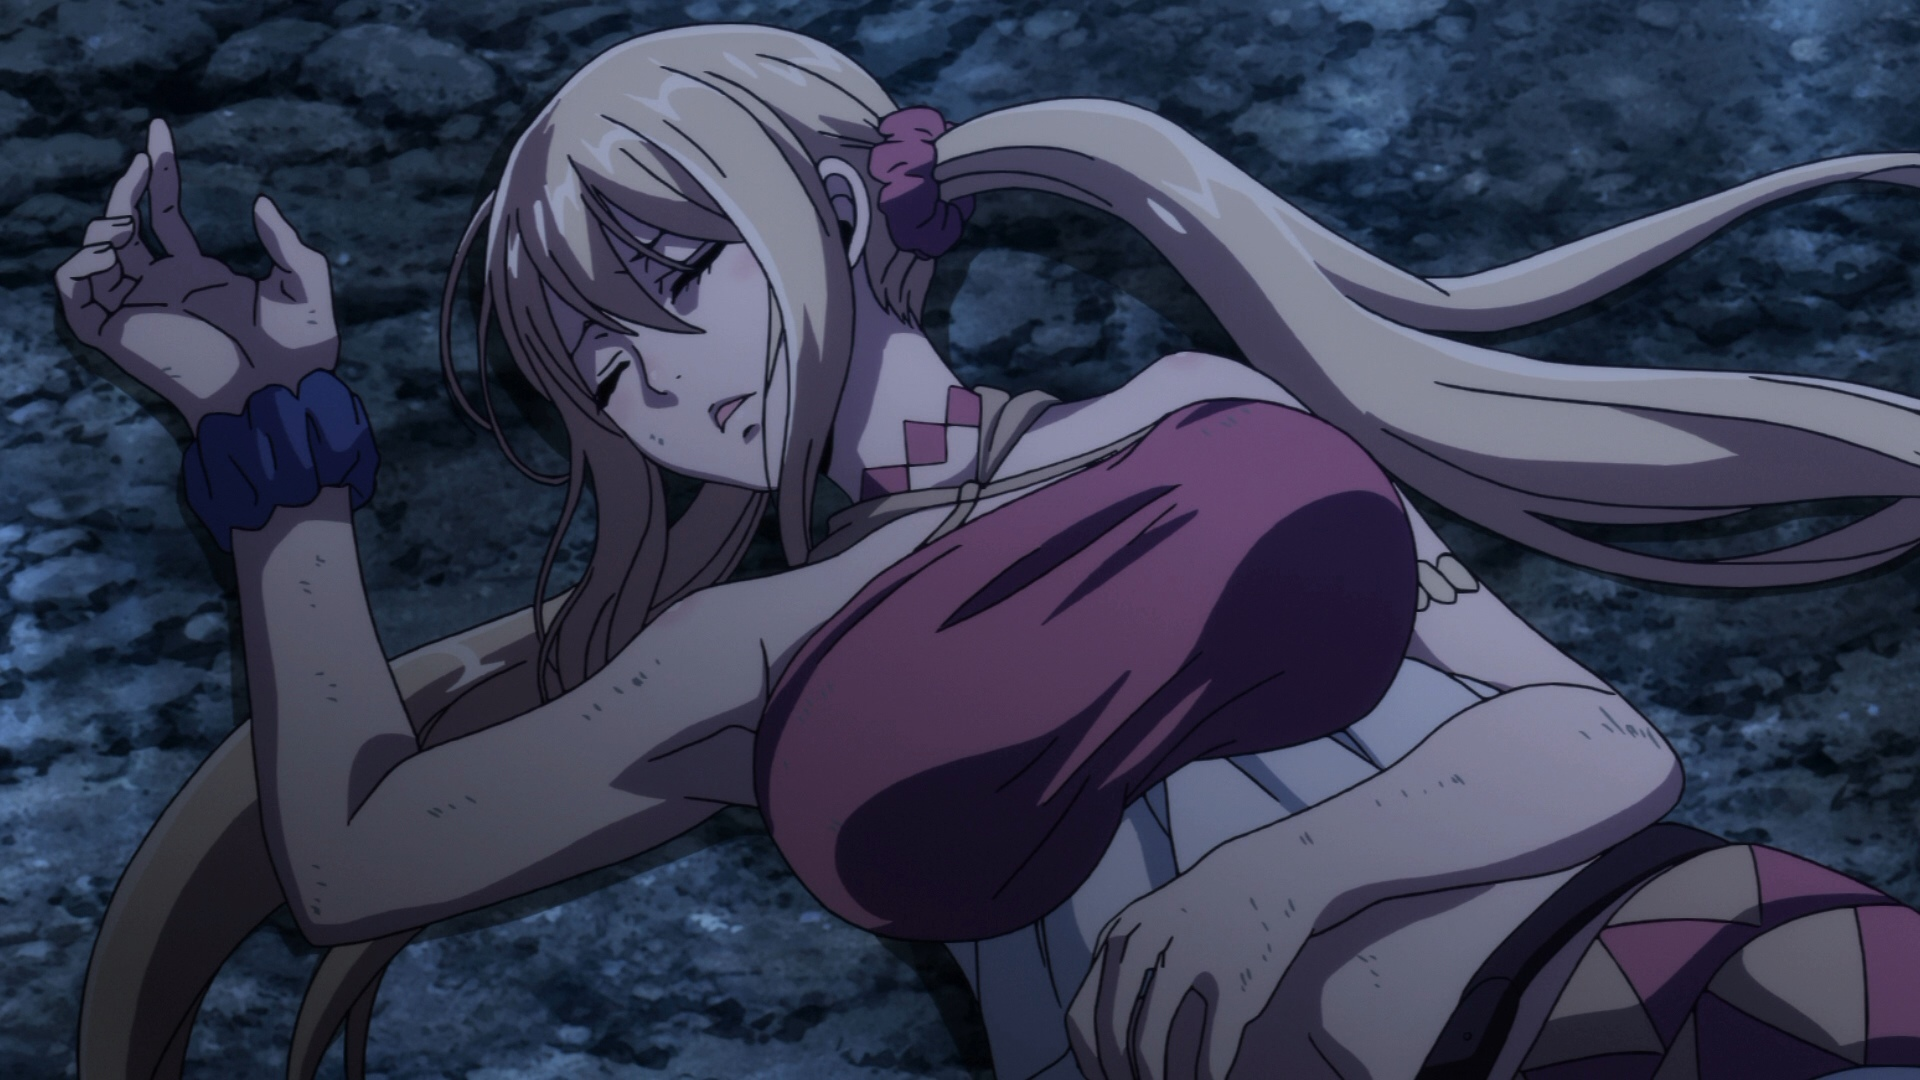 Fairy Tail Dragon Crymovie 2 Fanservice Review  Fapservice-3980